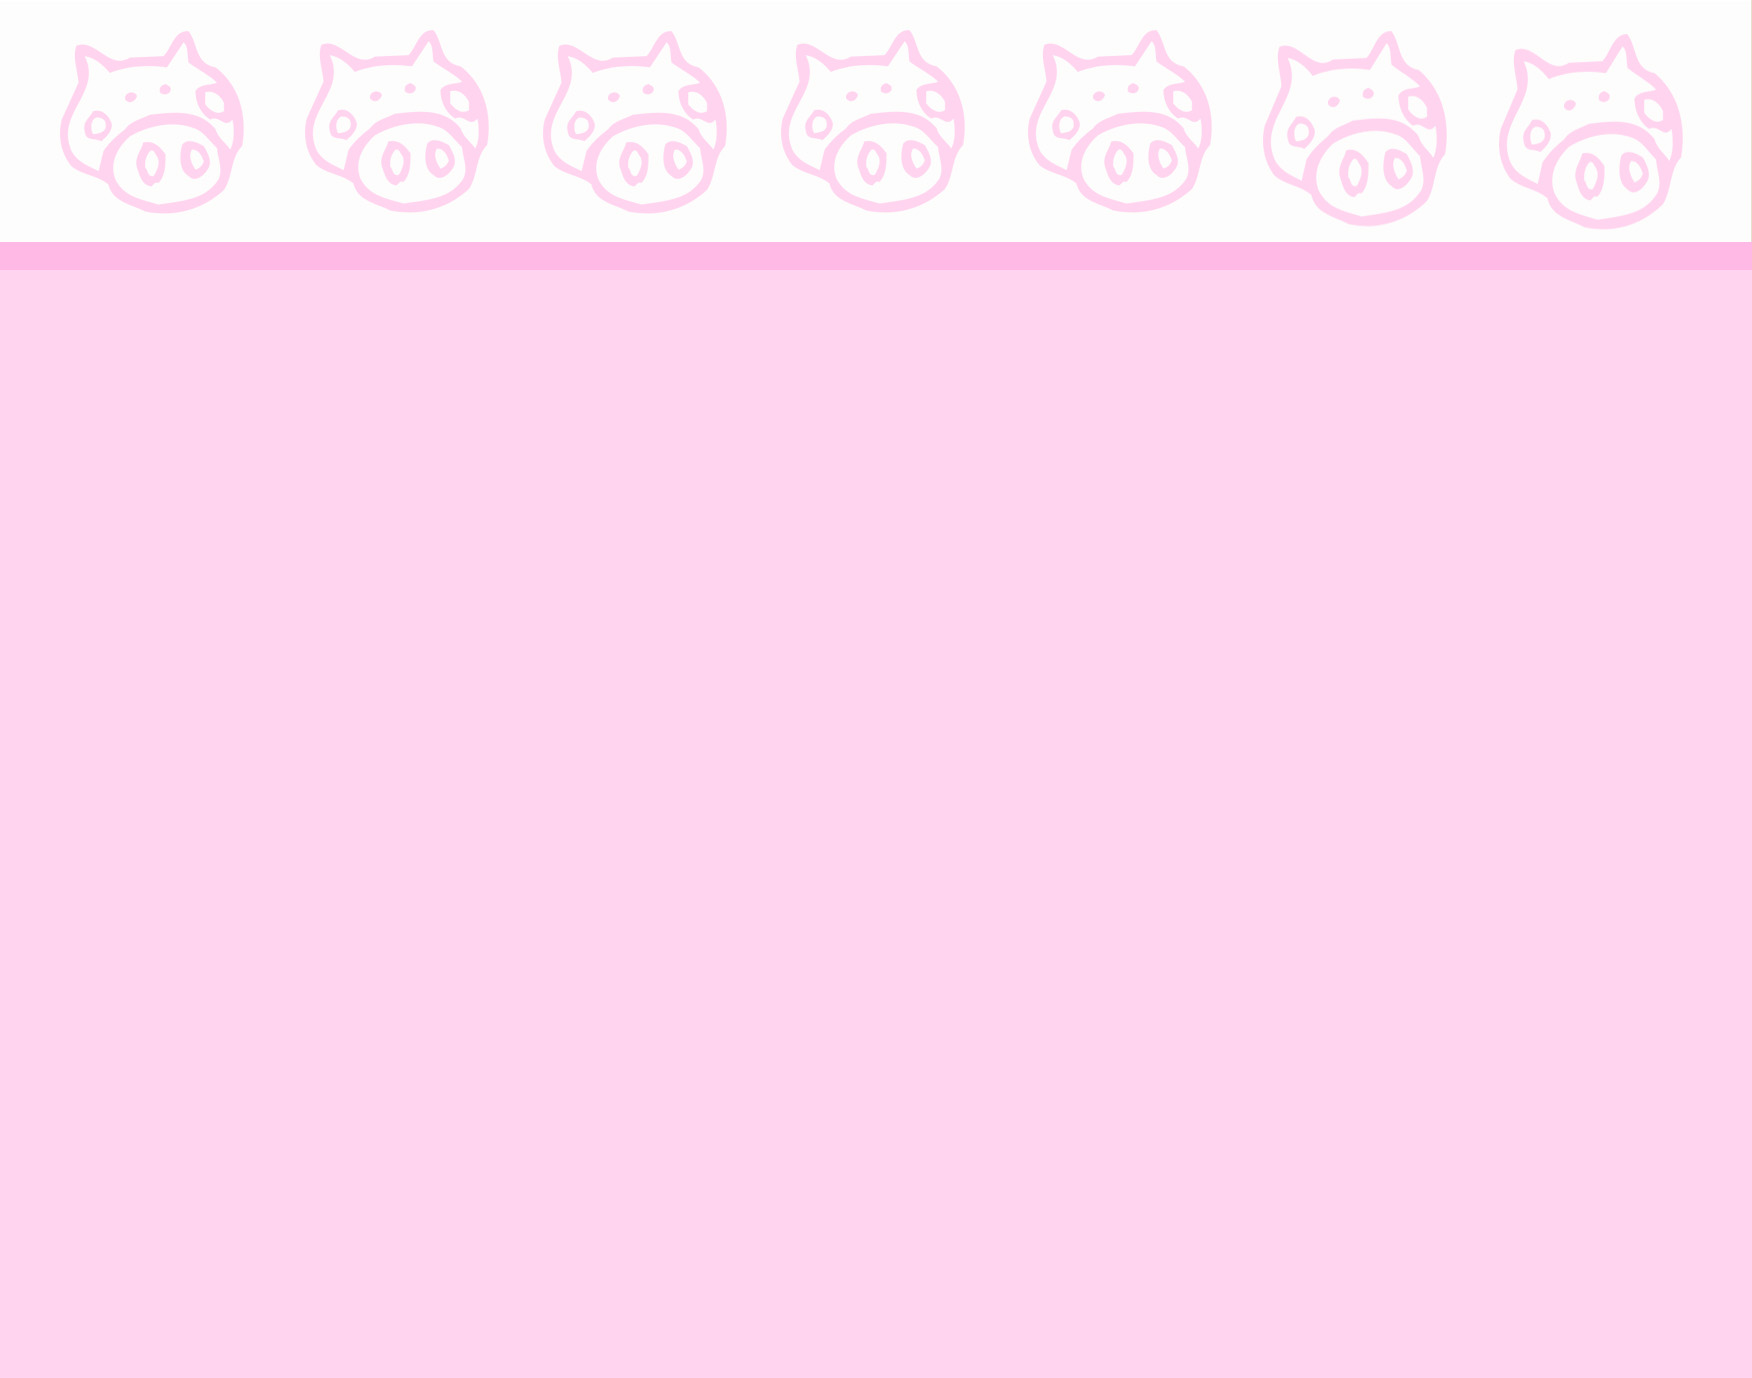 Pig Borders Backgrounds 1752x1378